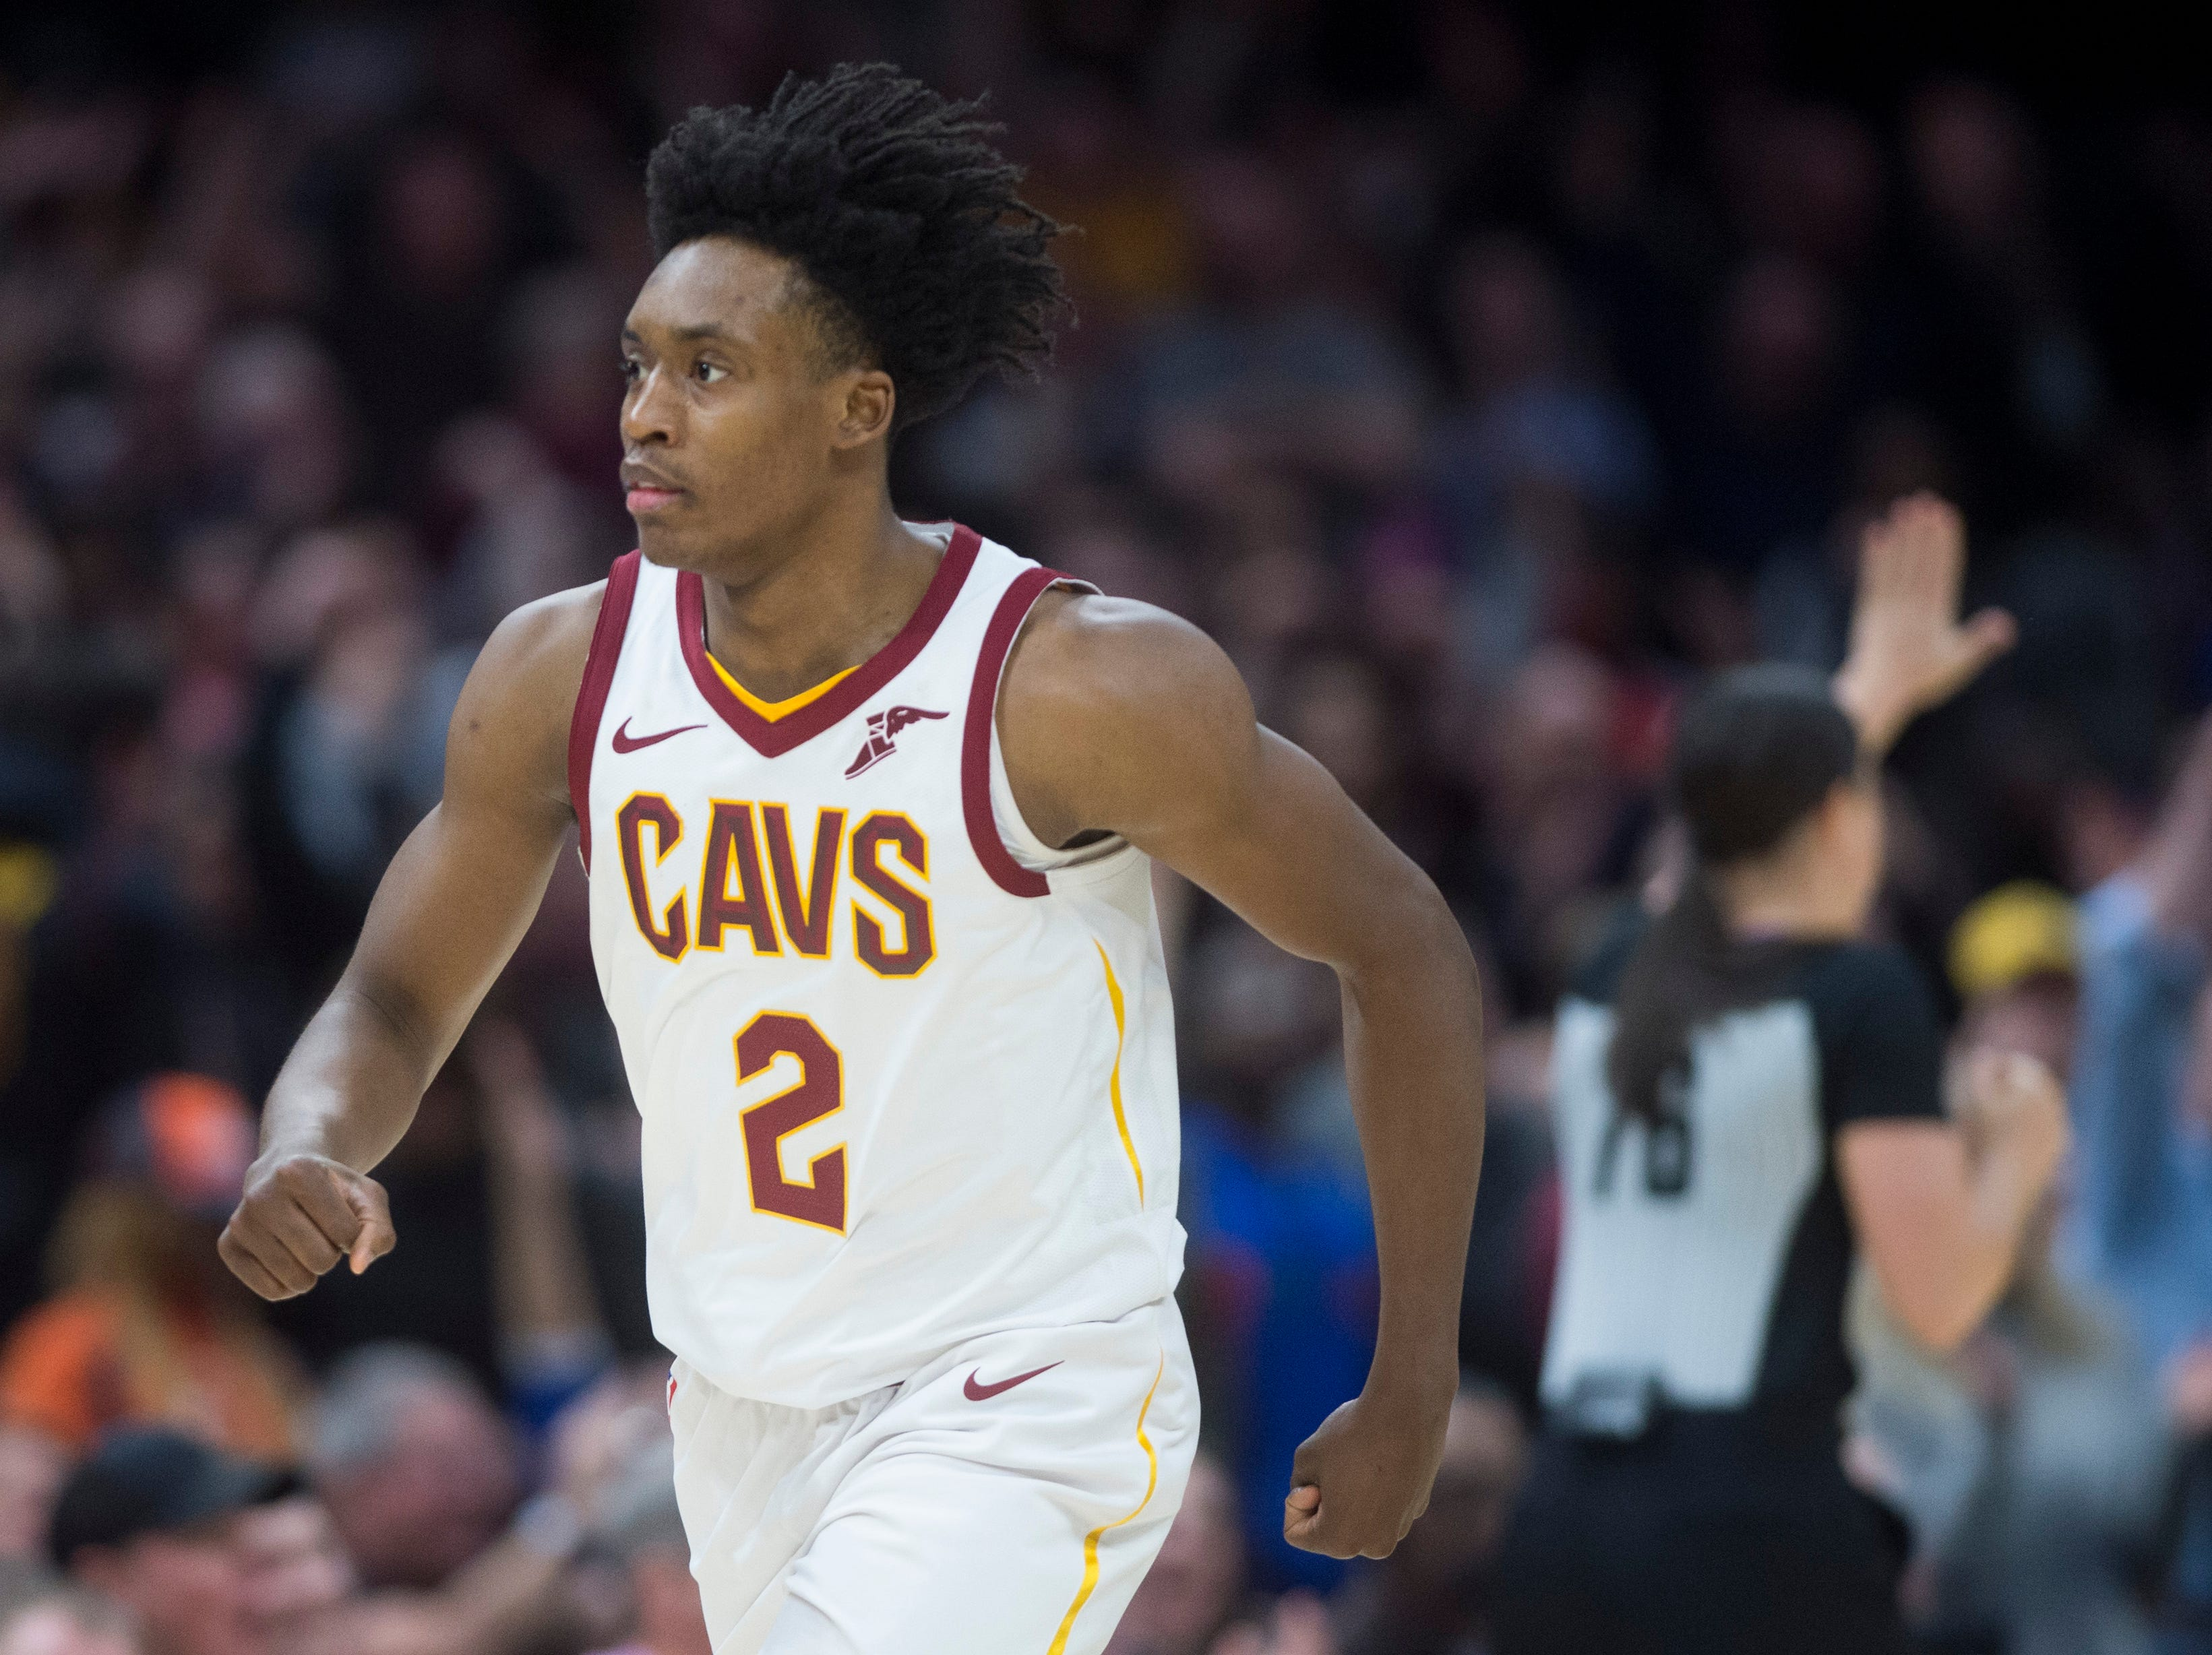 Cleveland Cavaliers' guard Collin Sexton reacts after hitting a three-point basket in the second half of an NBA basketball game.